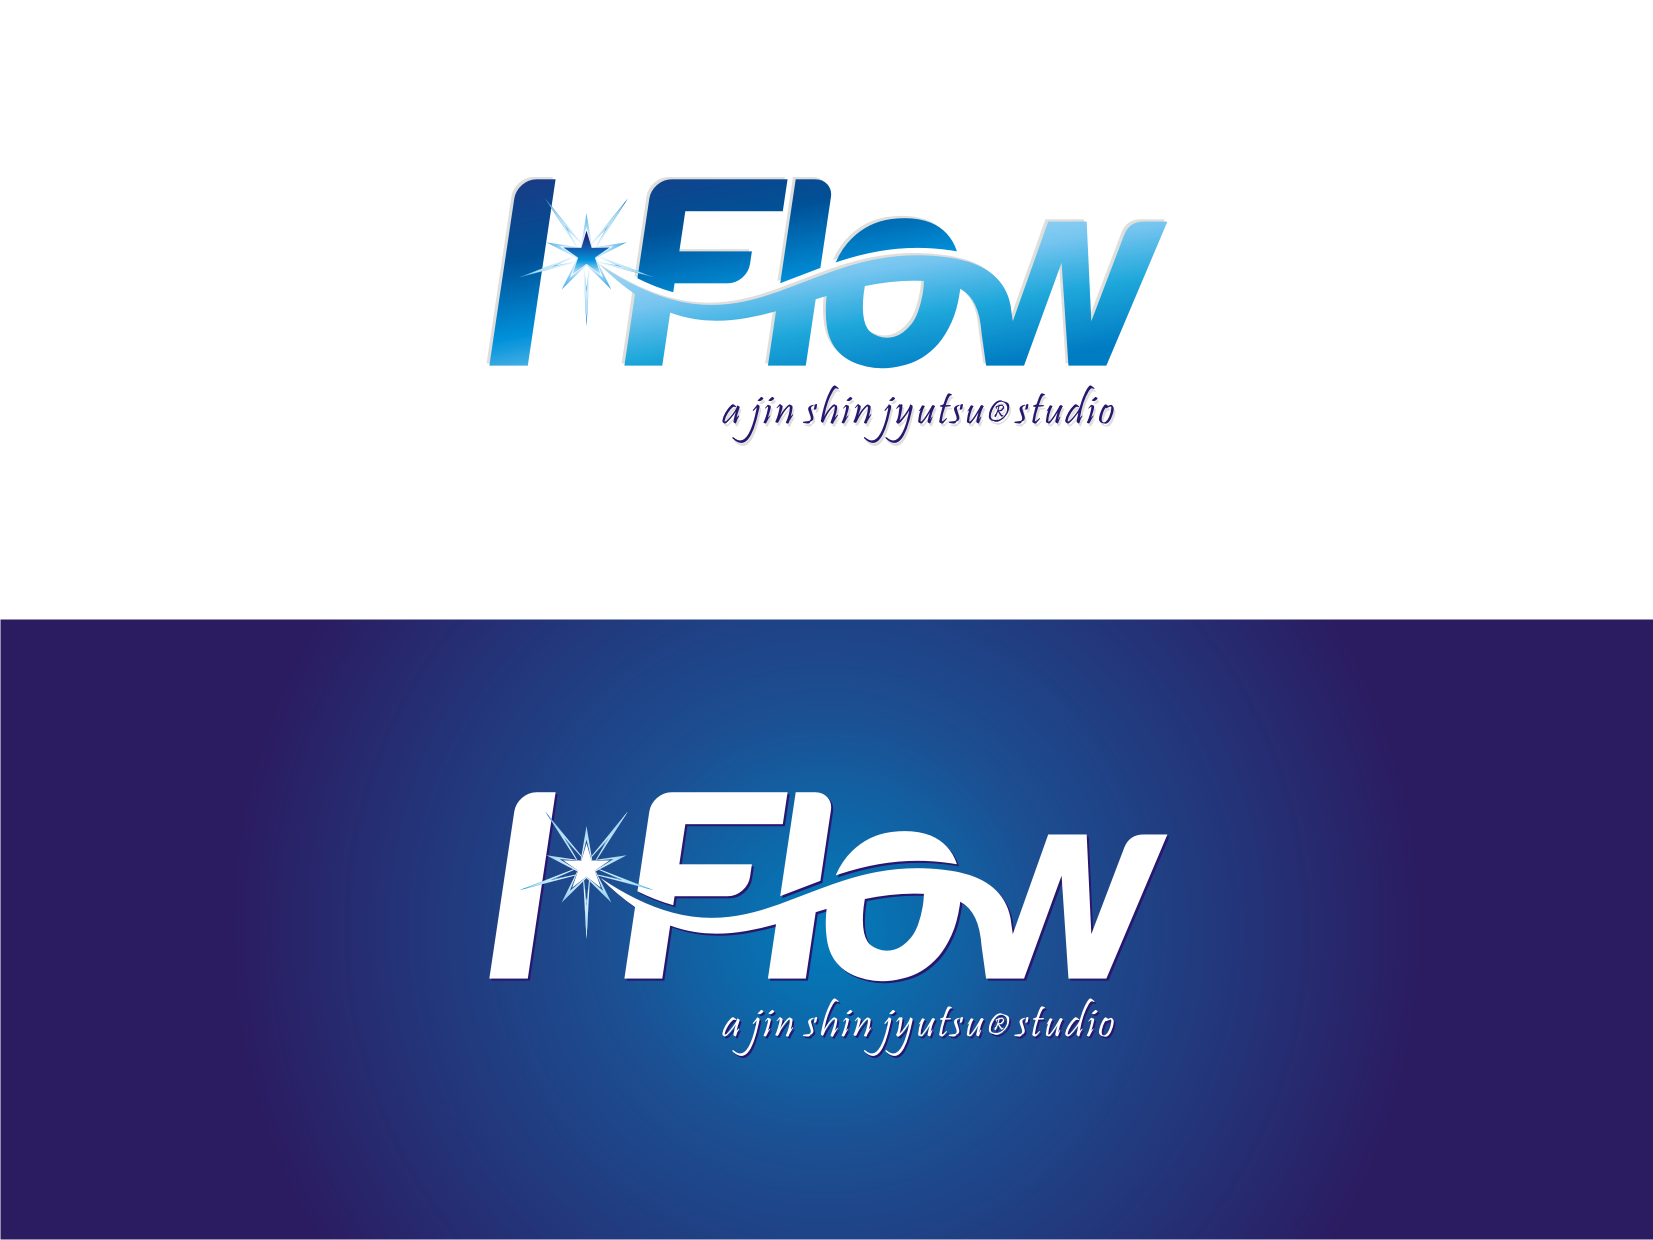 New logo wanted for I Flow (A Jin Shin Studio)